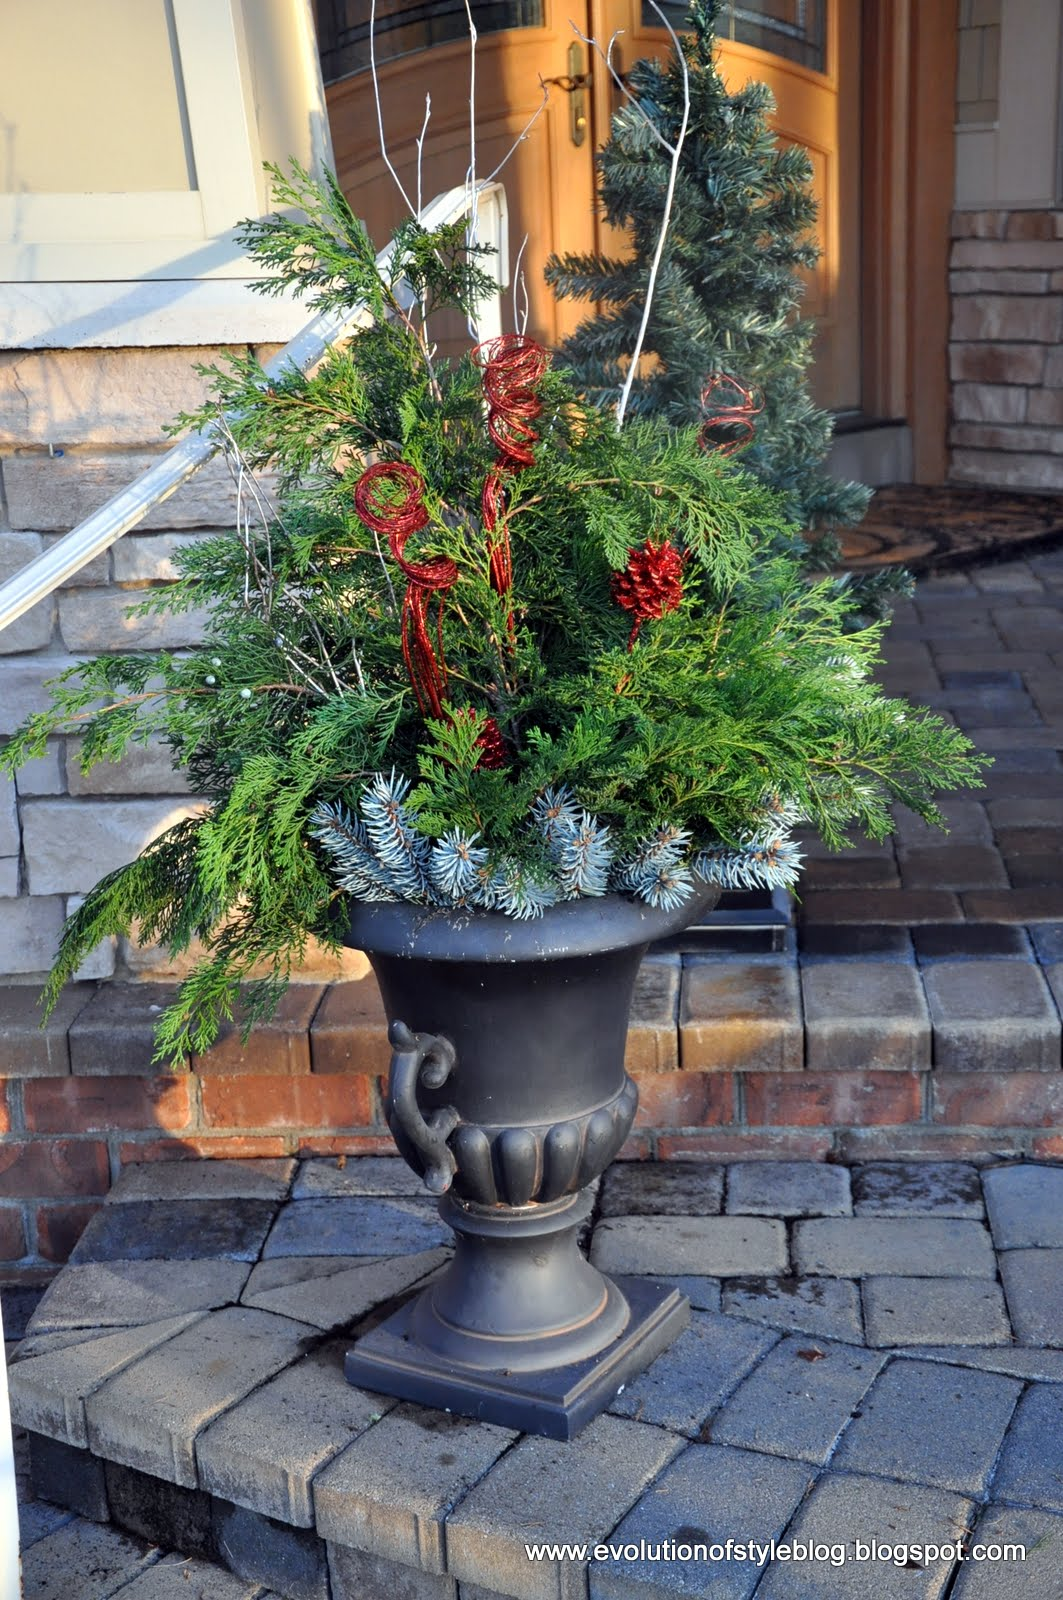 Decorating Ideas > Easy Outdoor Holiday Decor  Evolution Of Style ~ 085848_Christmas Decorating Ideas For Outdoor Planters